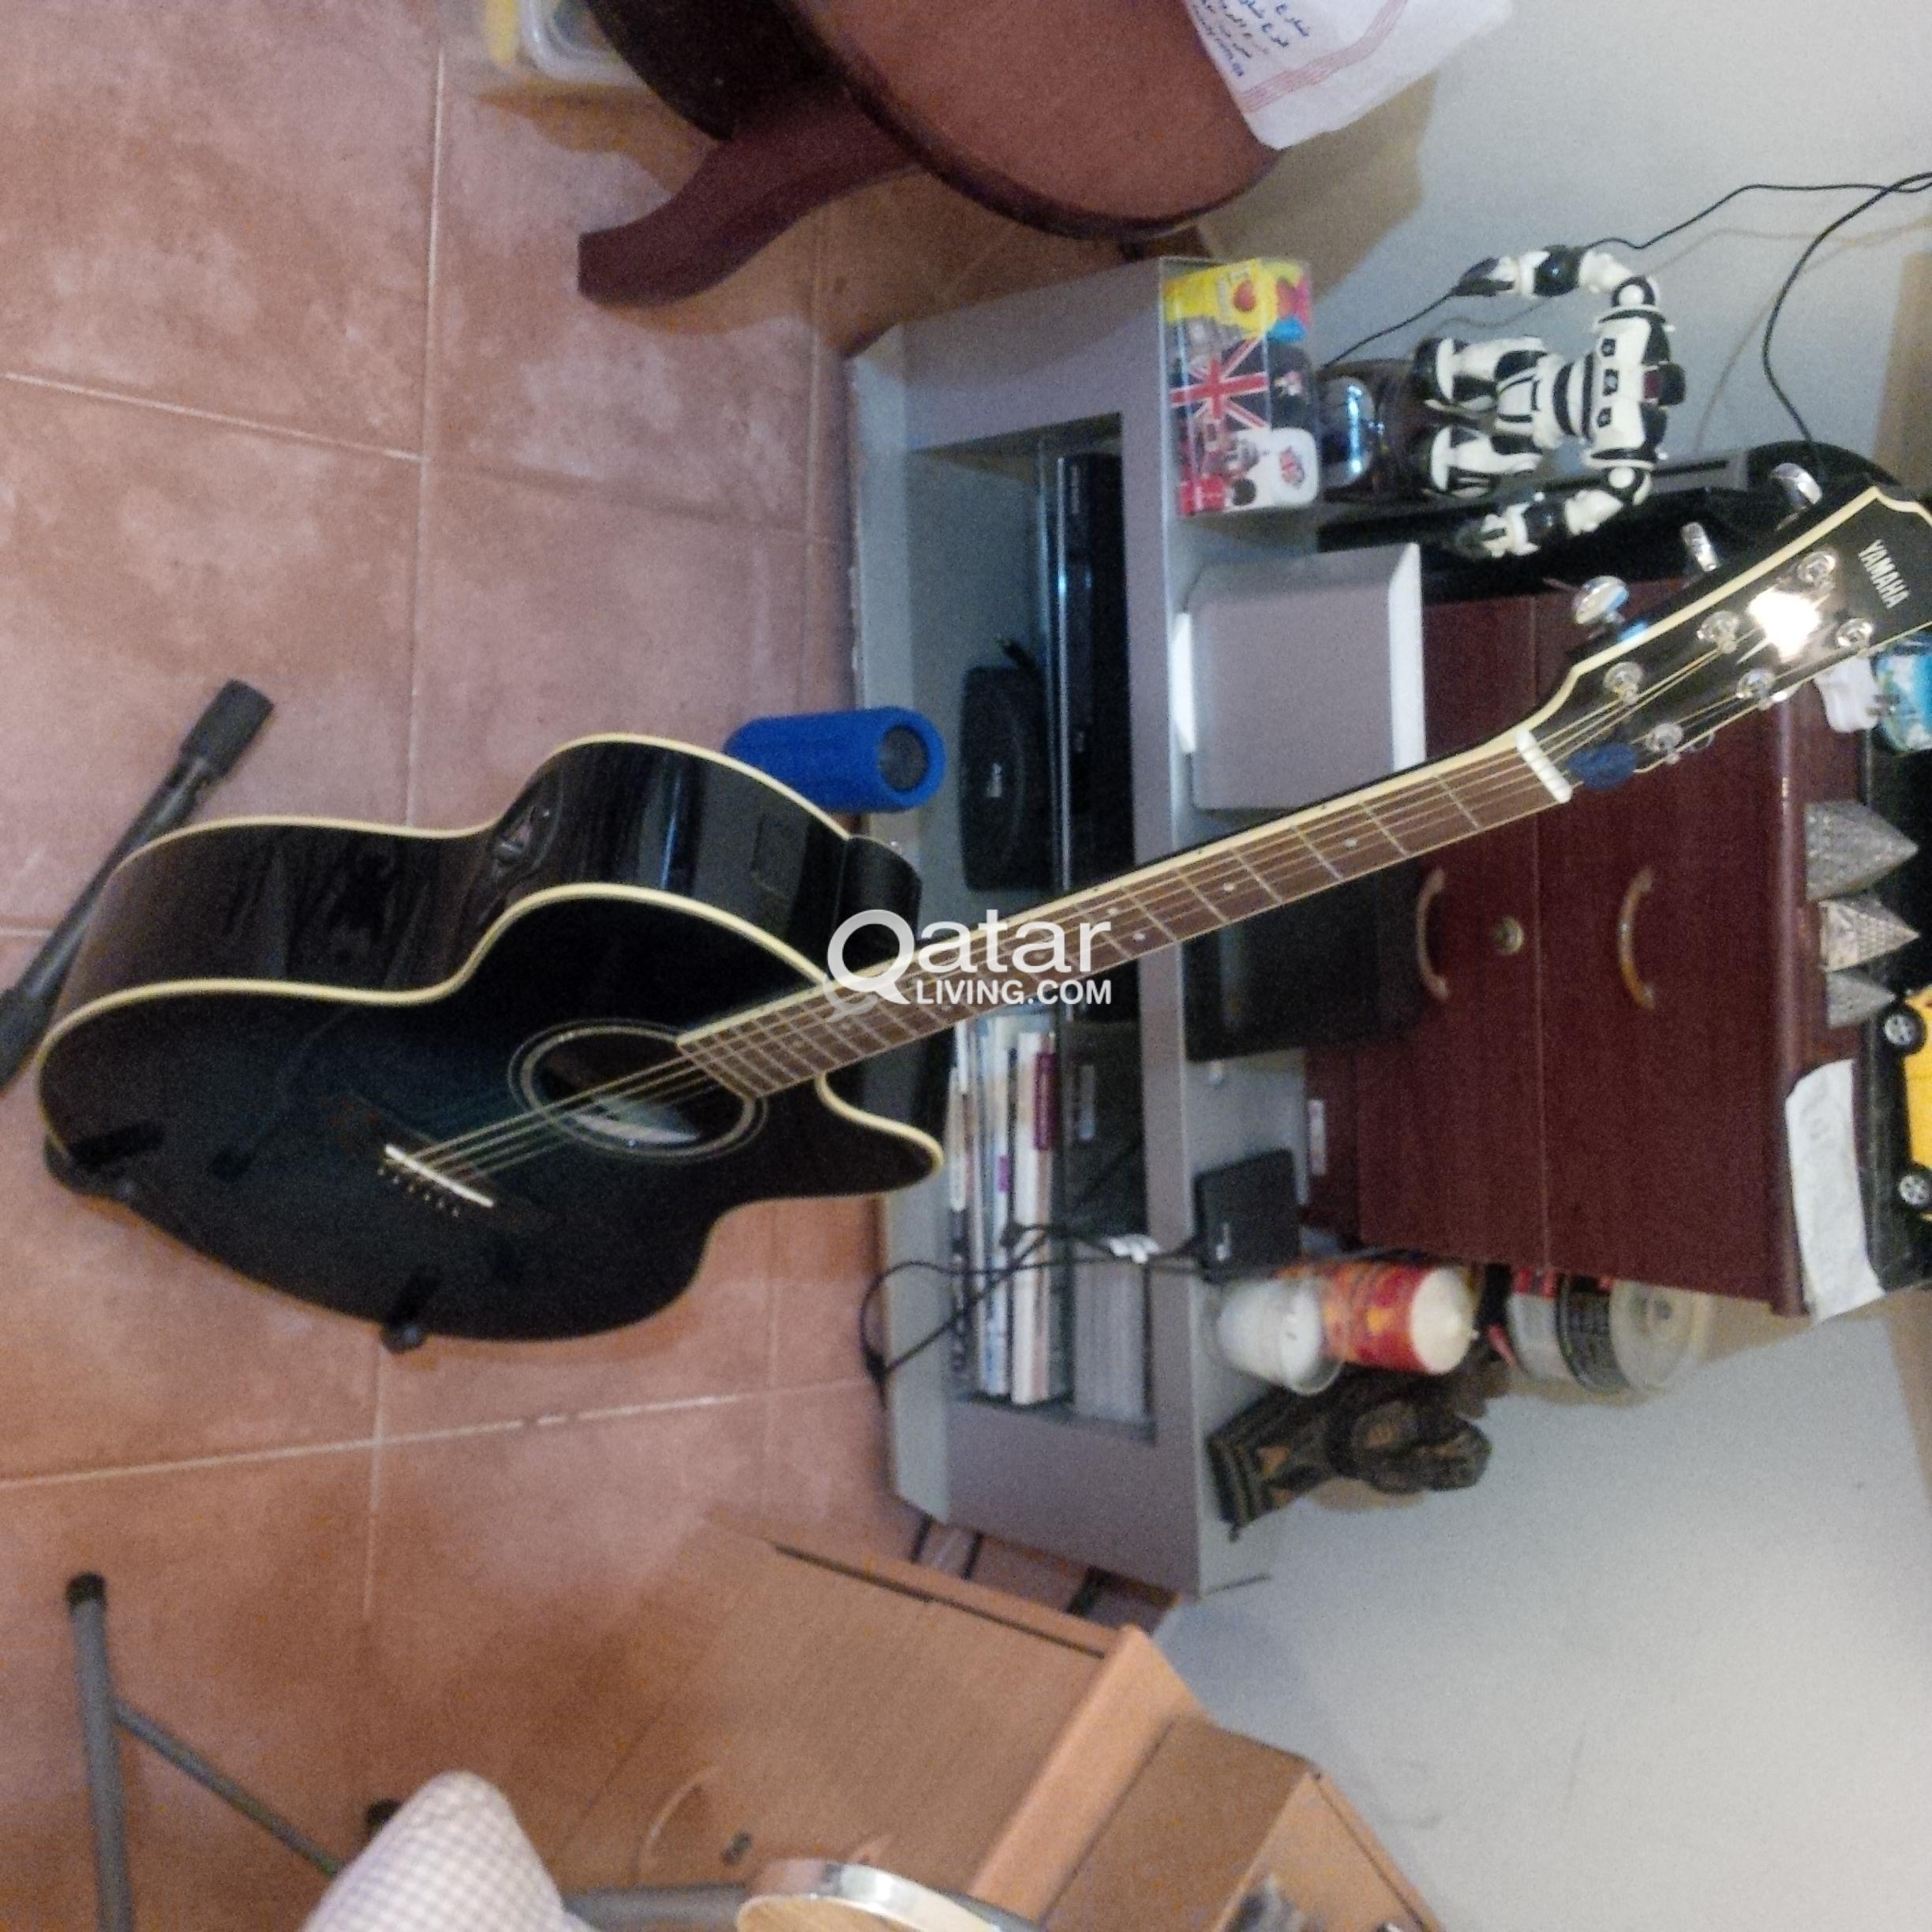 Yamaha Compass Cpx700 Obb Electro Acoustic Guitar Qatar Living